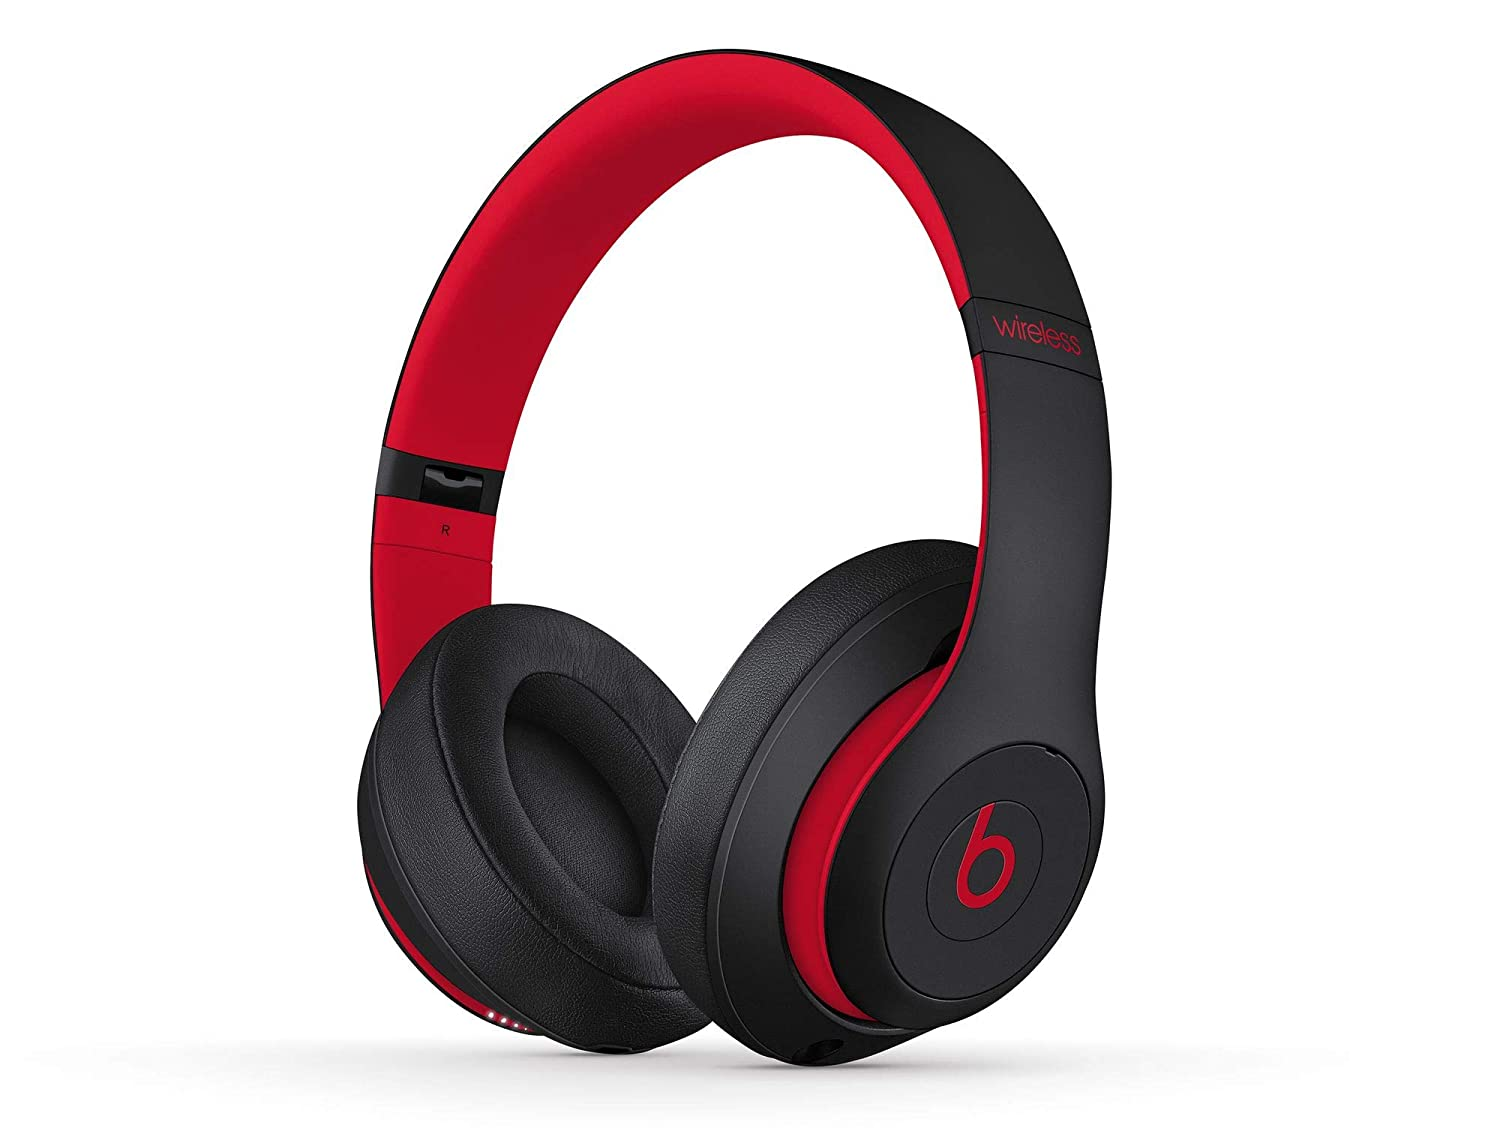 Auriculares cerrados Beats Studio3 Wireless - The Beats Decade Collection - Rojo y negro: Apple: Amazon.es